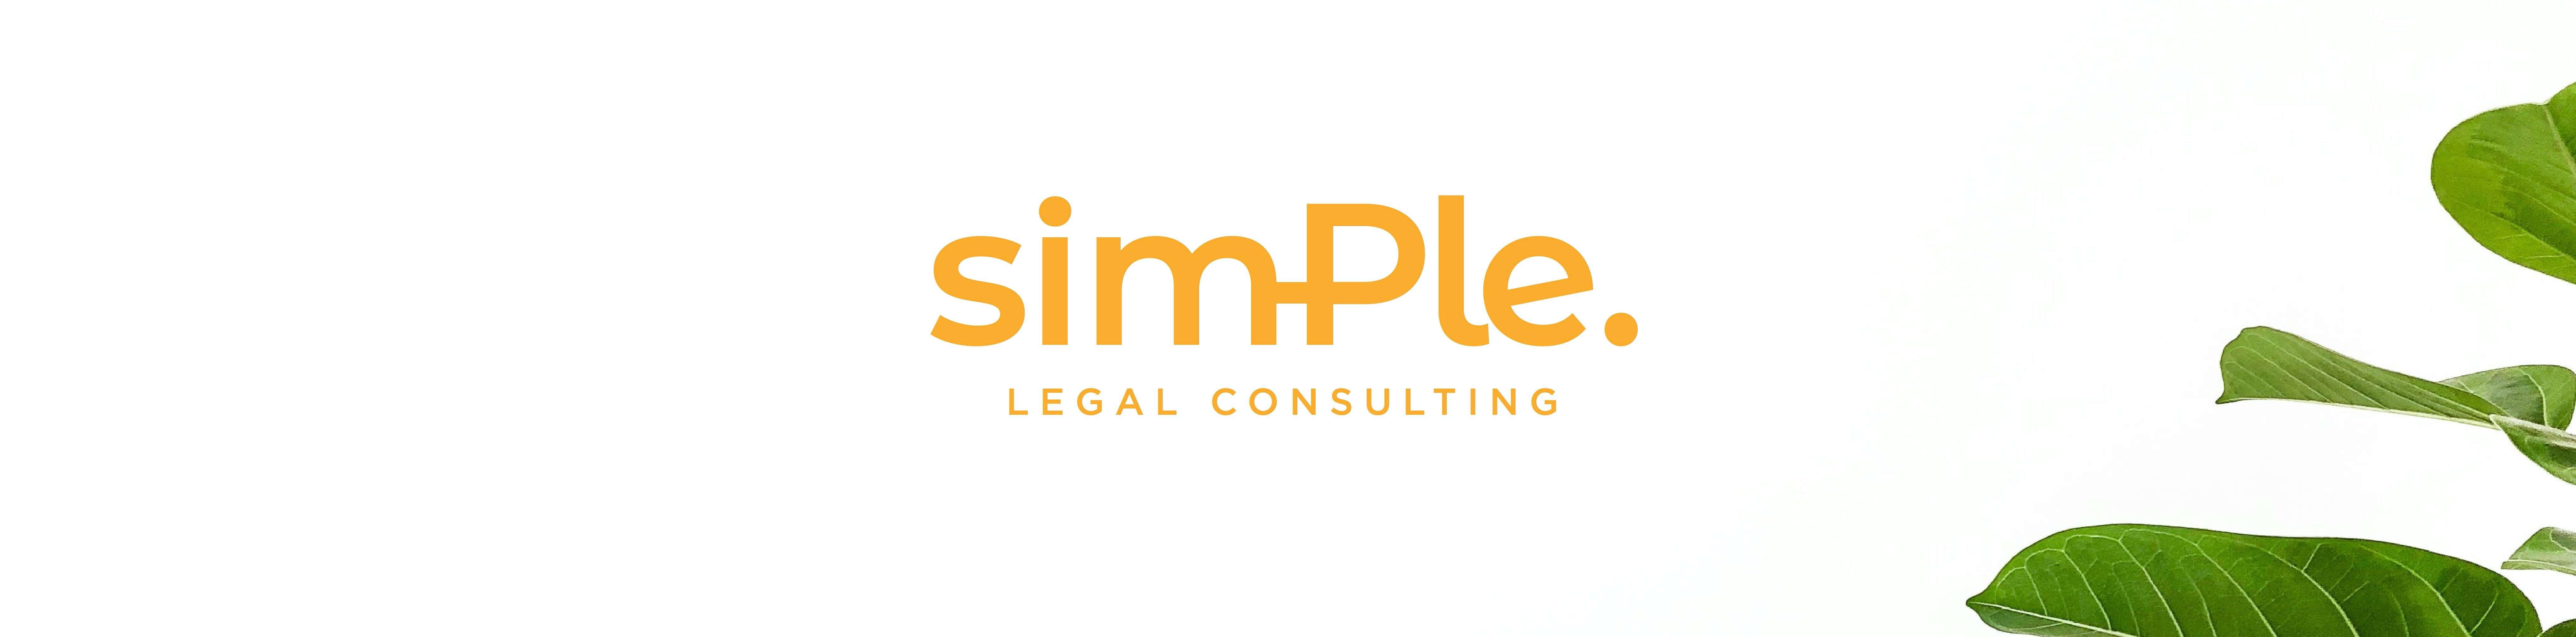 Simple Legal Consulting - Banner